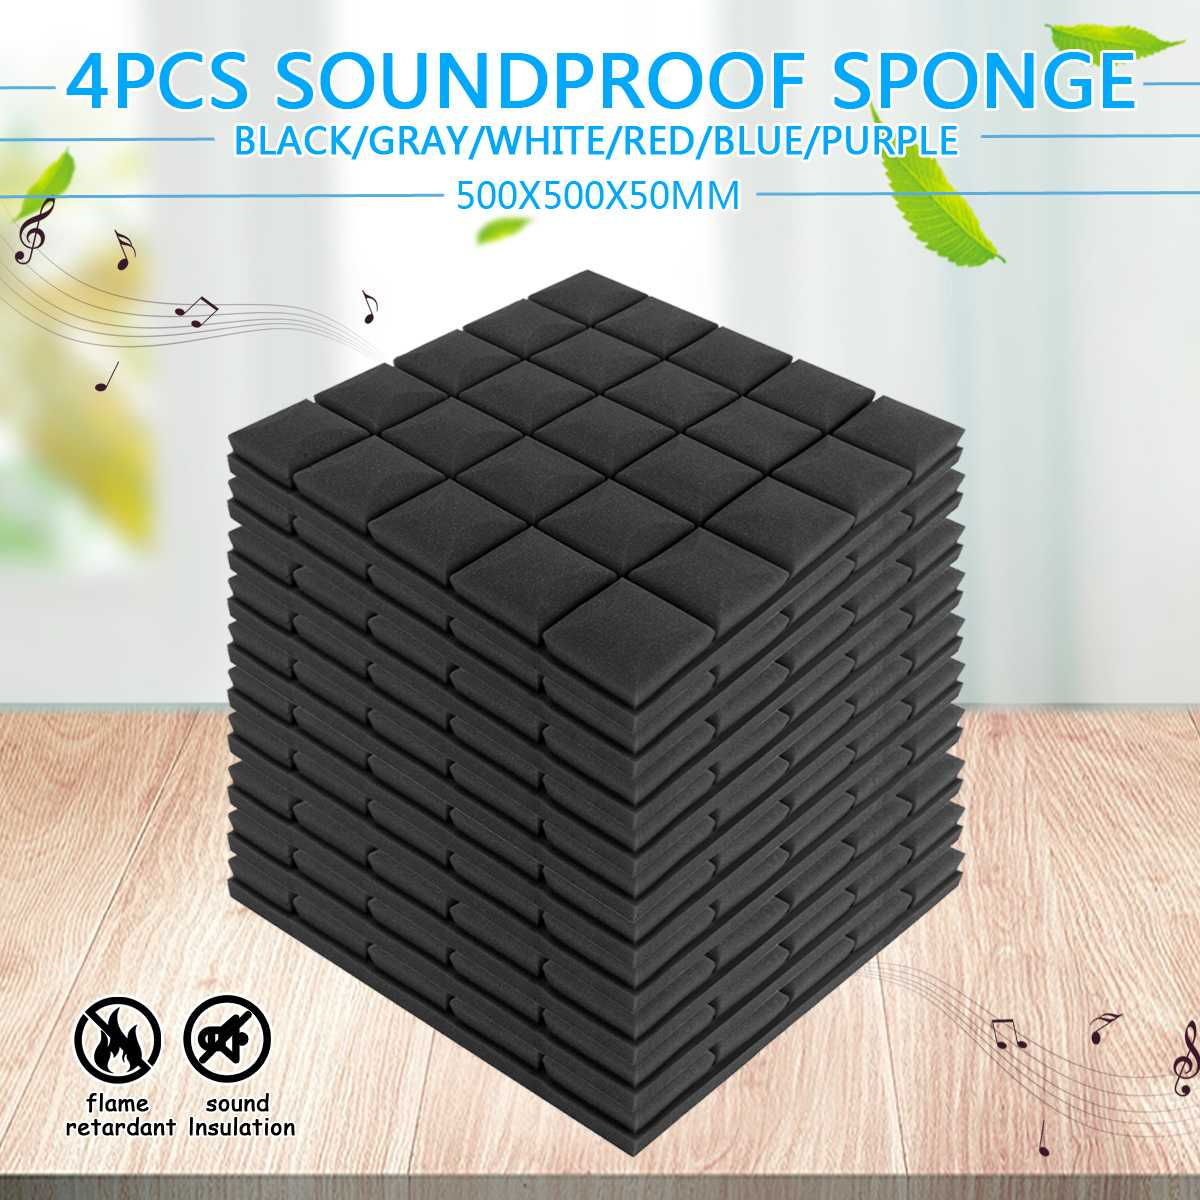 50x50x5cm Soundproof Foam Studio Acoustic Sound Absorption Treatment Panel Tile Wedge Protective Sponge